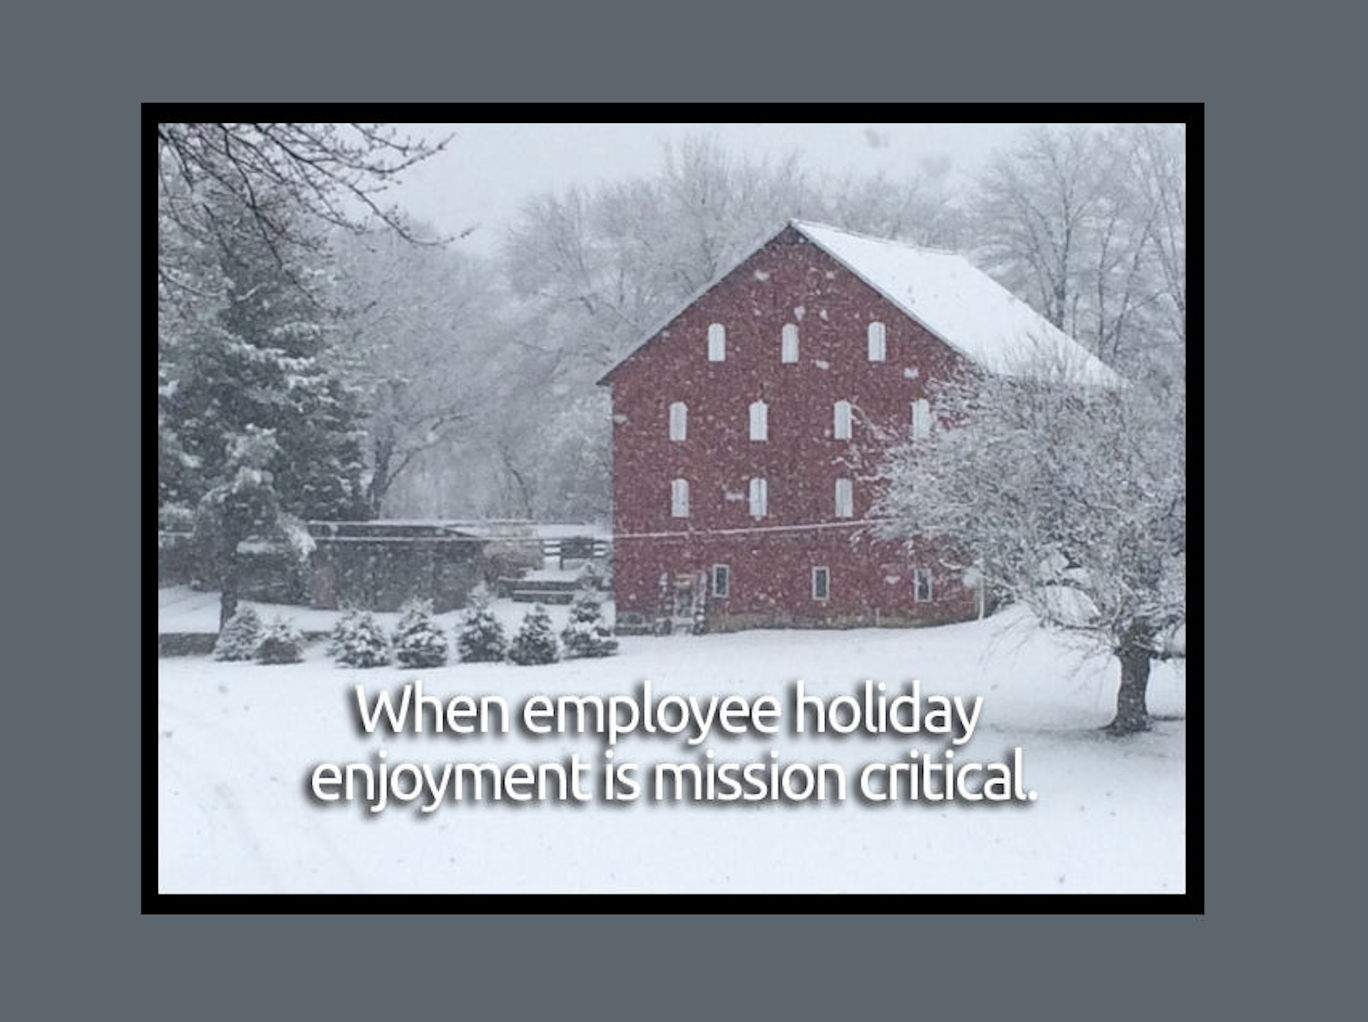 Mission-Critial-Holiday-LG